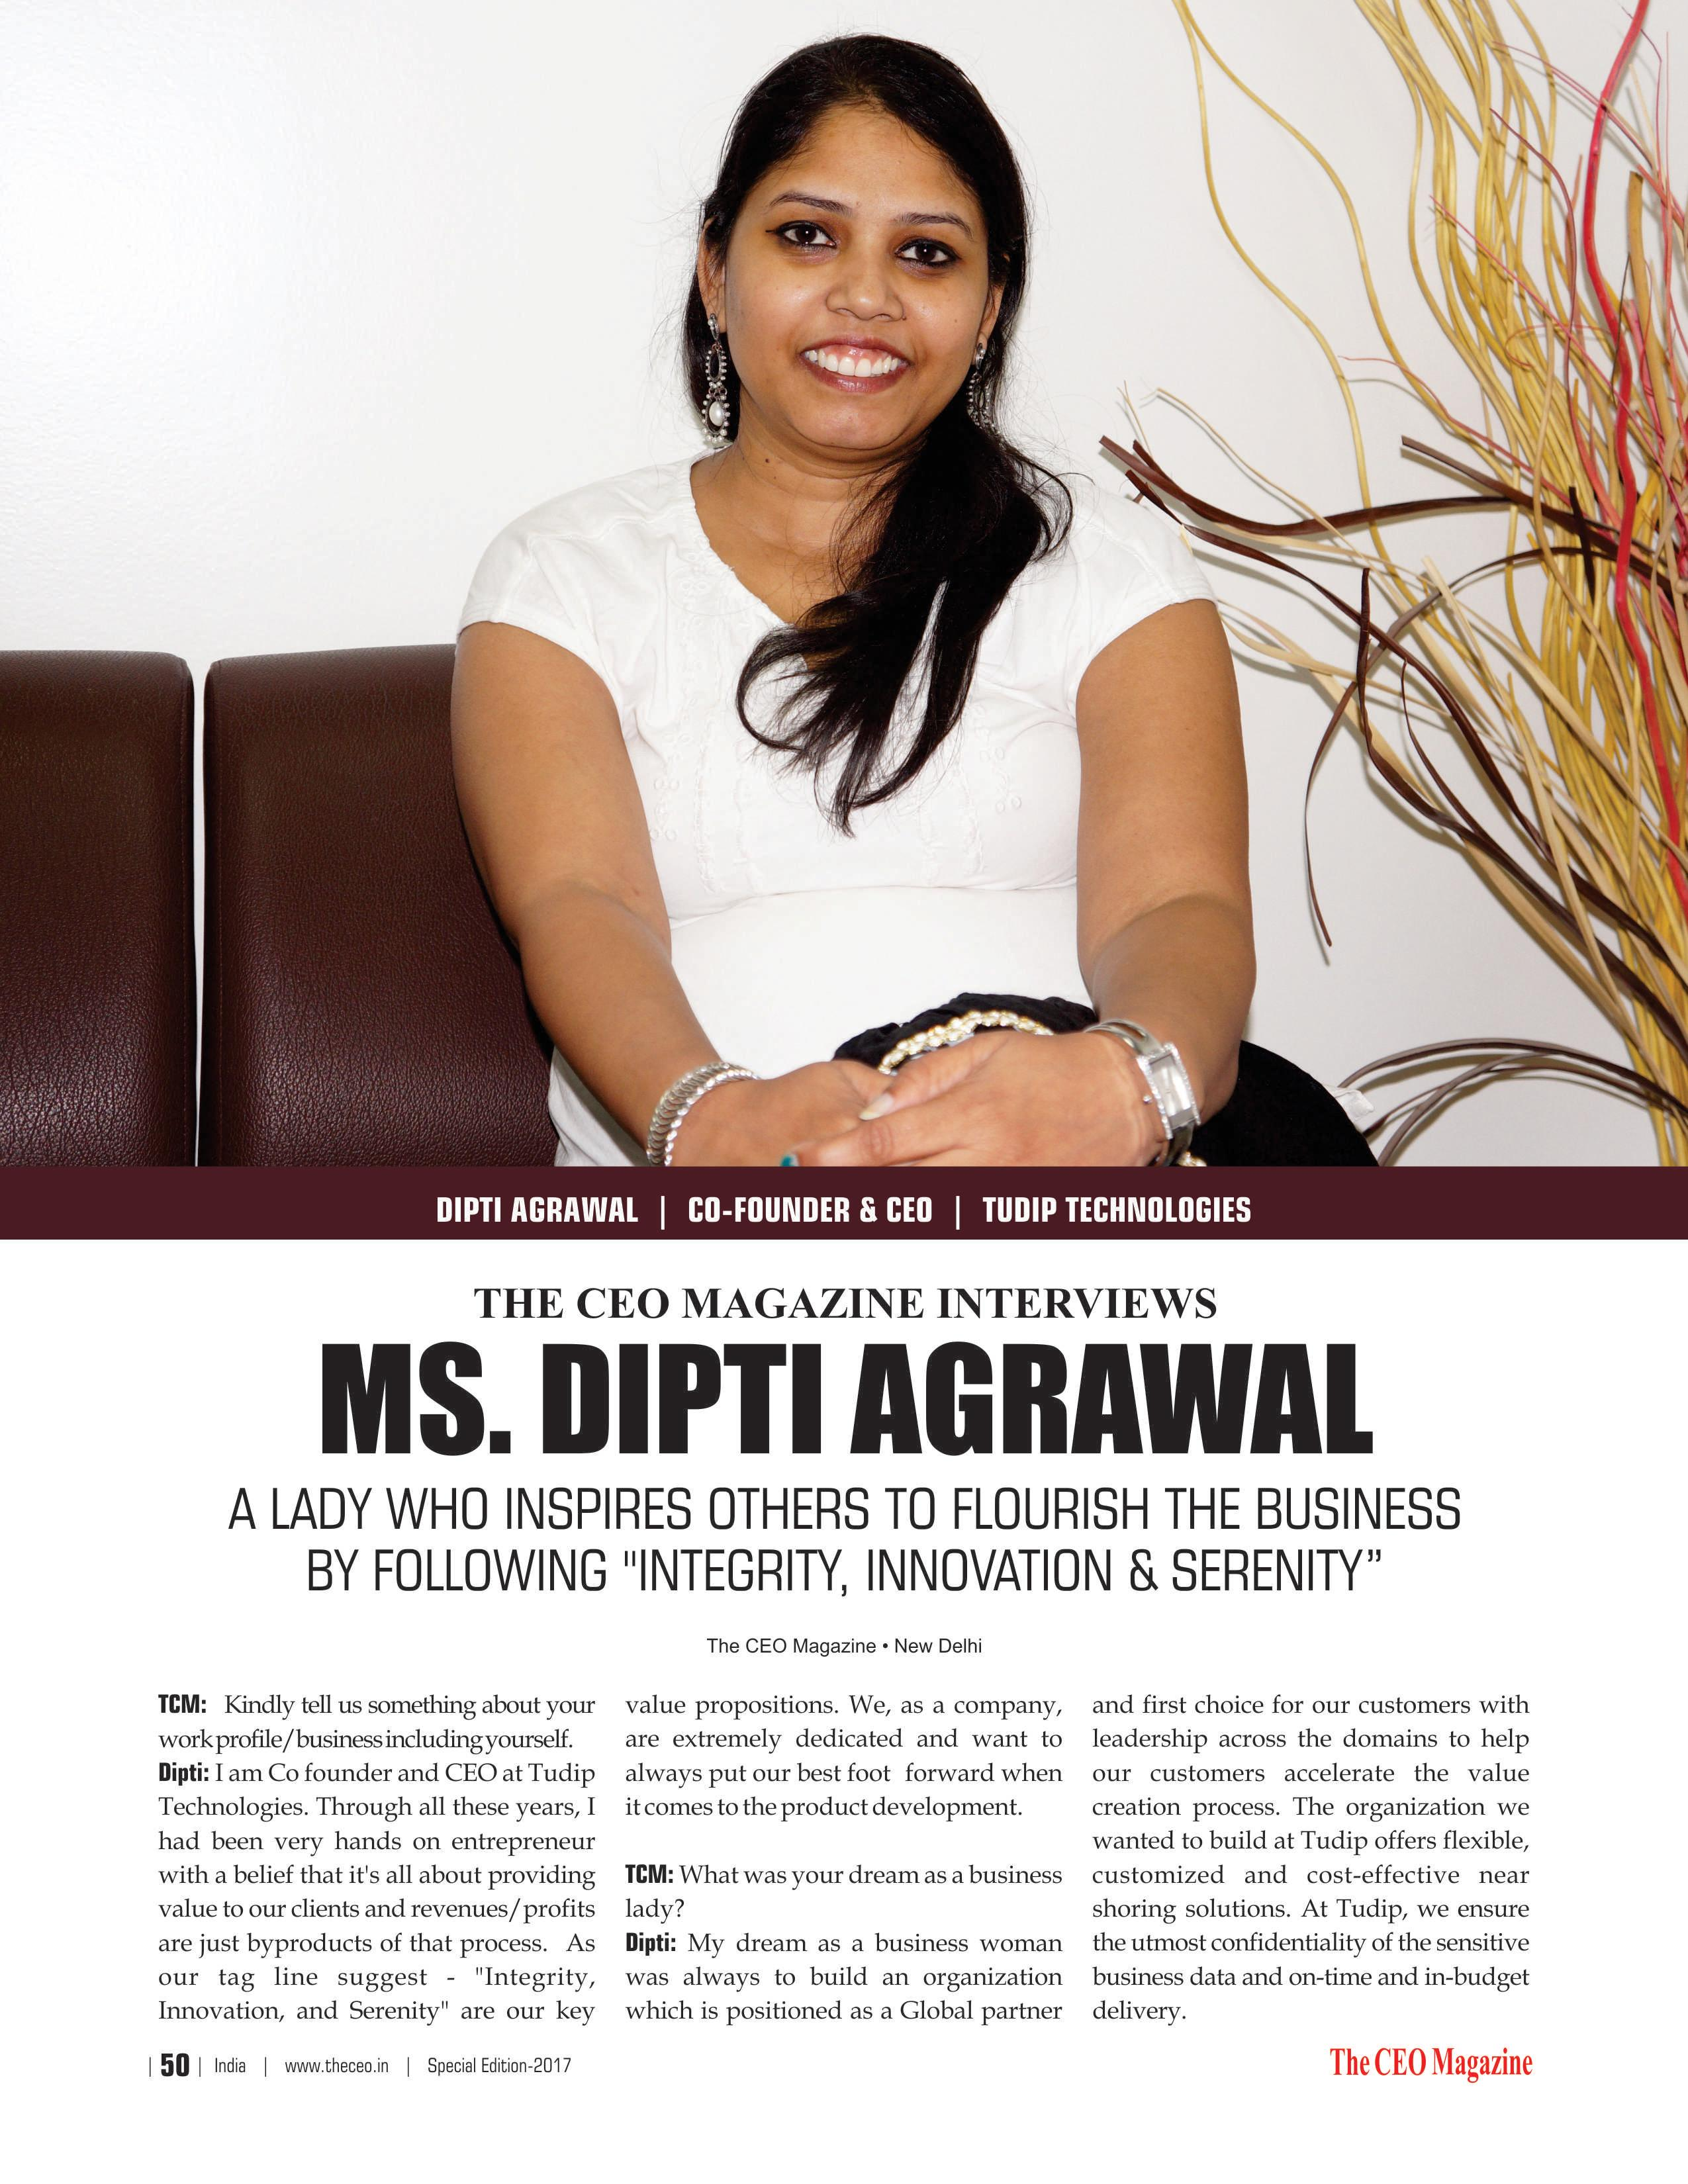 Dipti Agrawal is one of the 25 most Influential Women in India of 2017